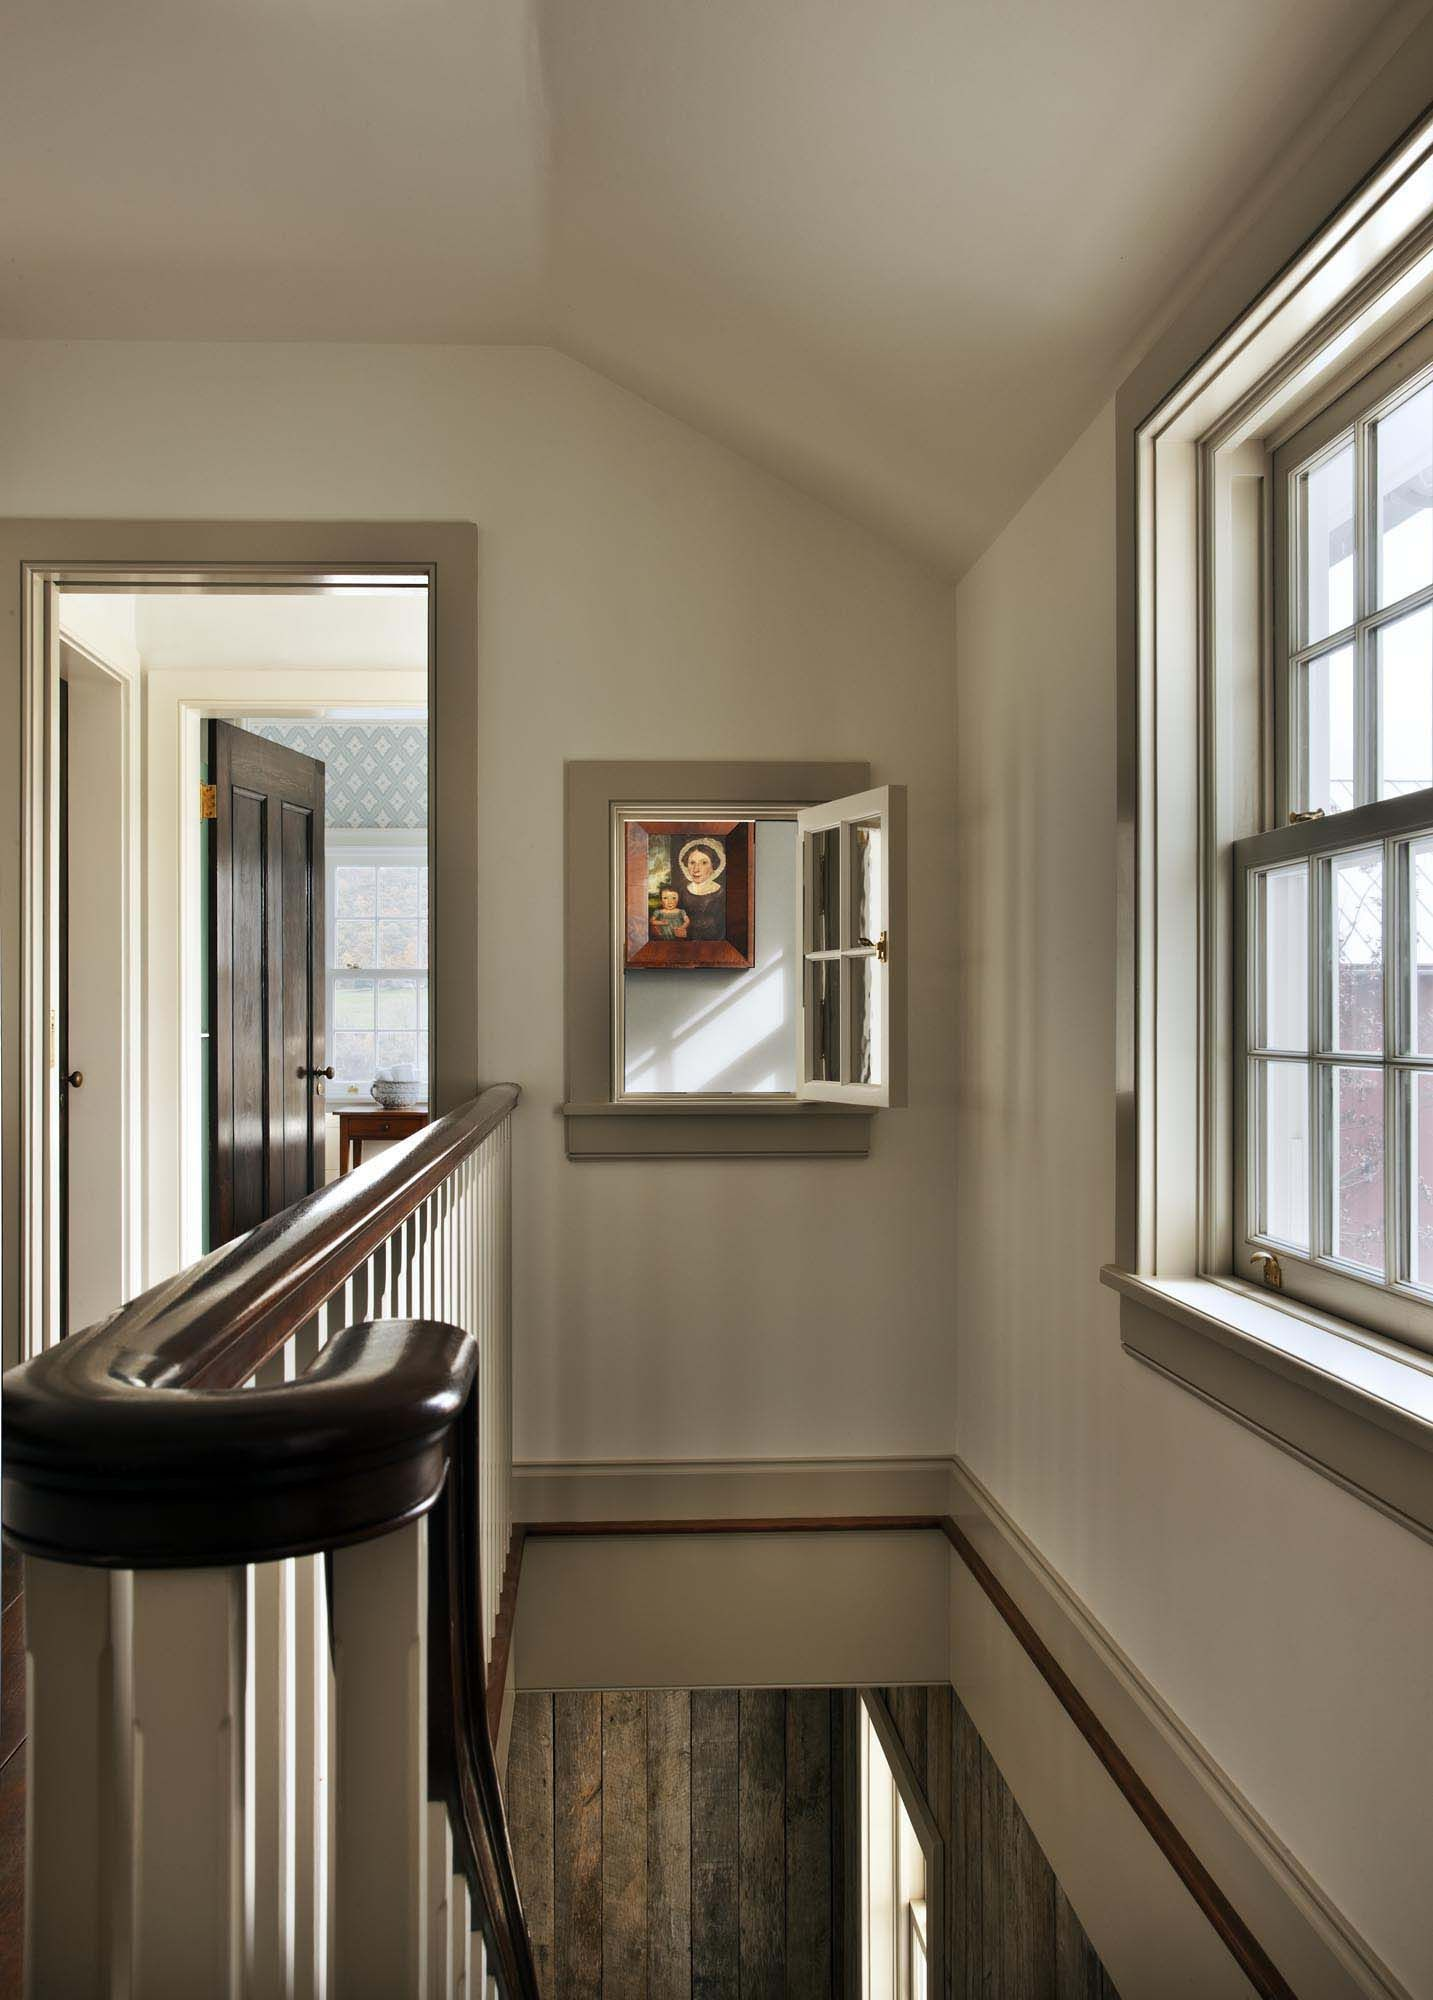 Secondary stairhall  new farmhouse in columbia county york john  murray architect interior design by sam blount photography durston also rh pinterest